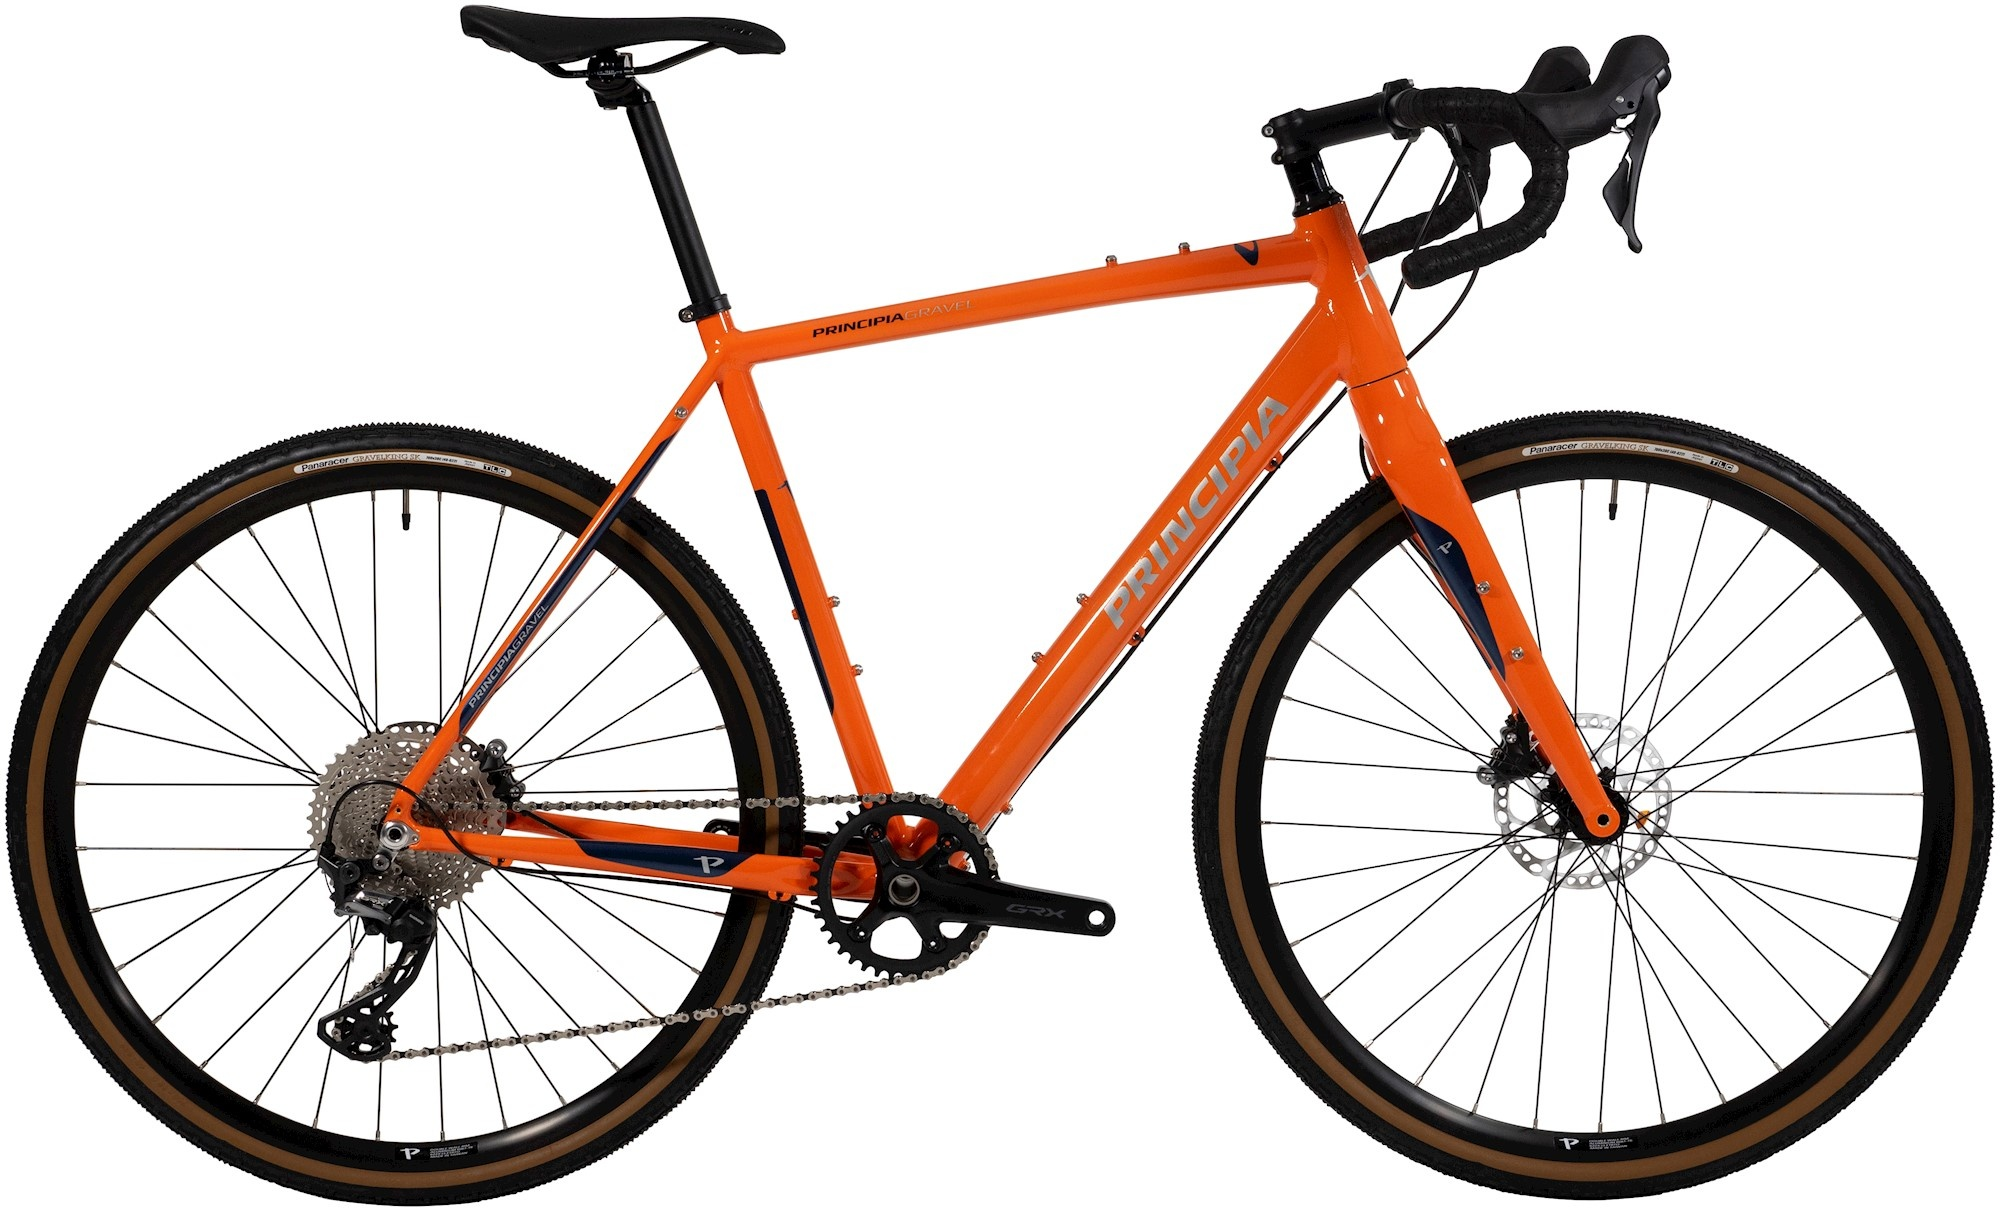 Principia Gravel Alu GRX RX600 2021 - Orange